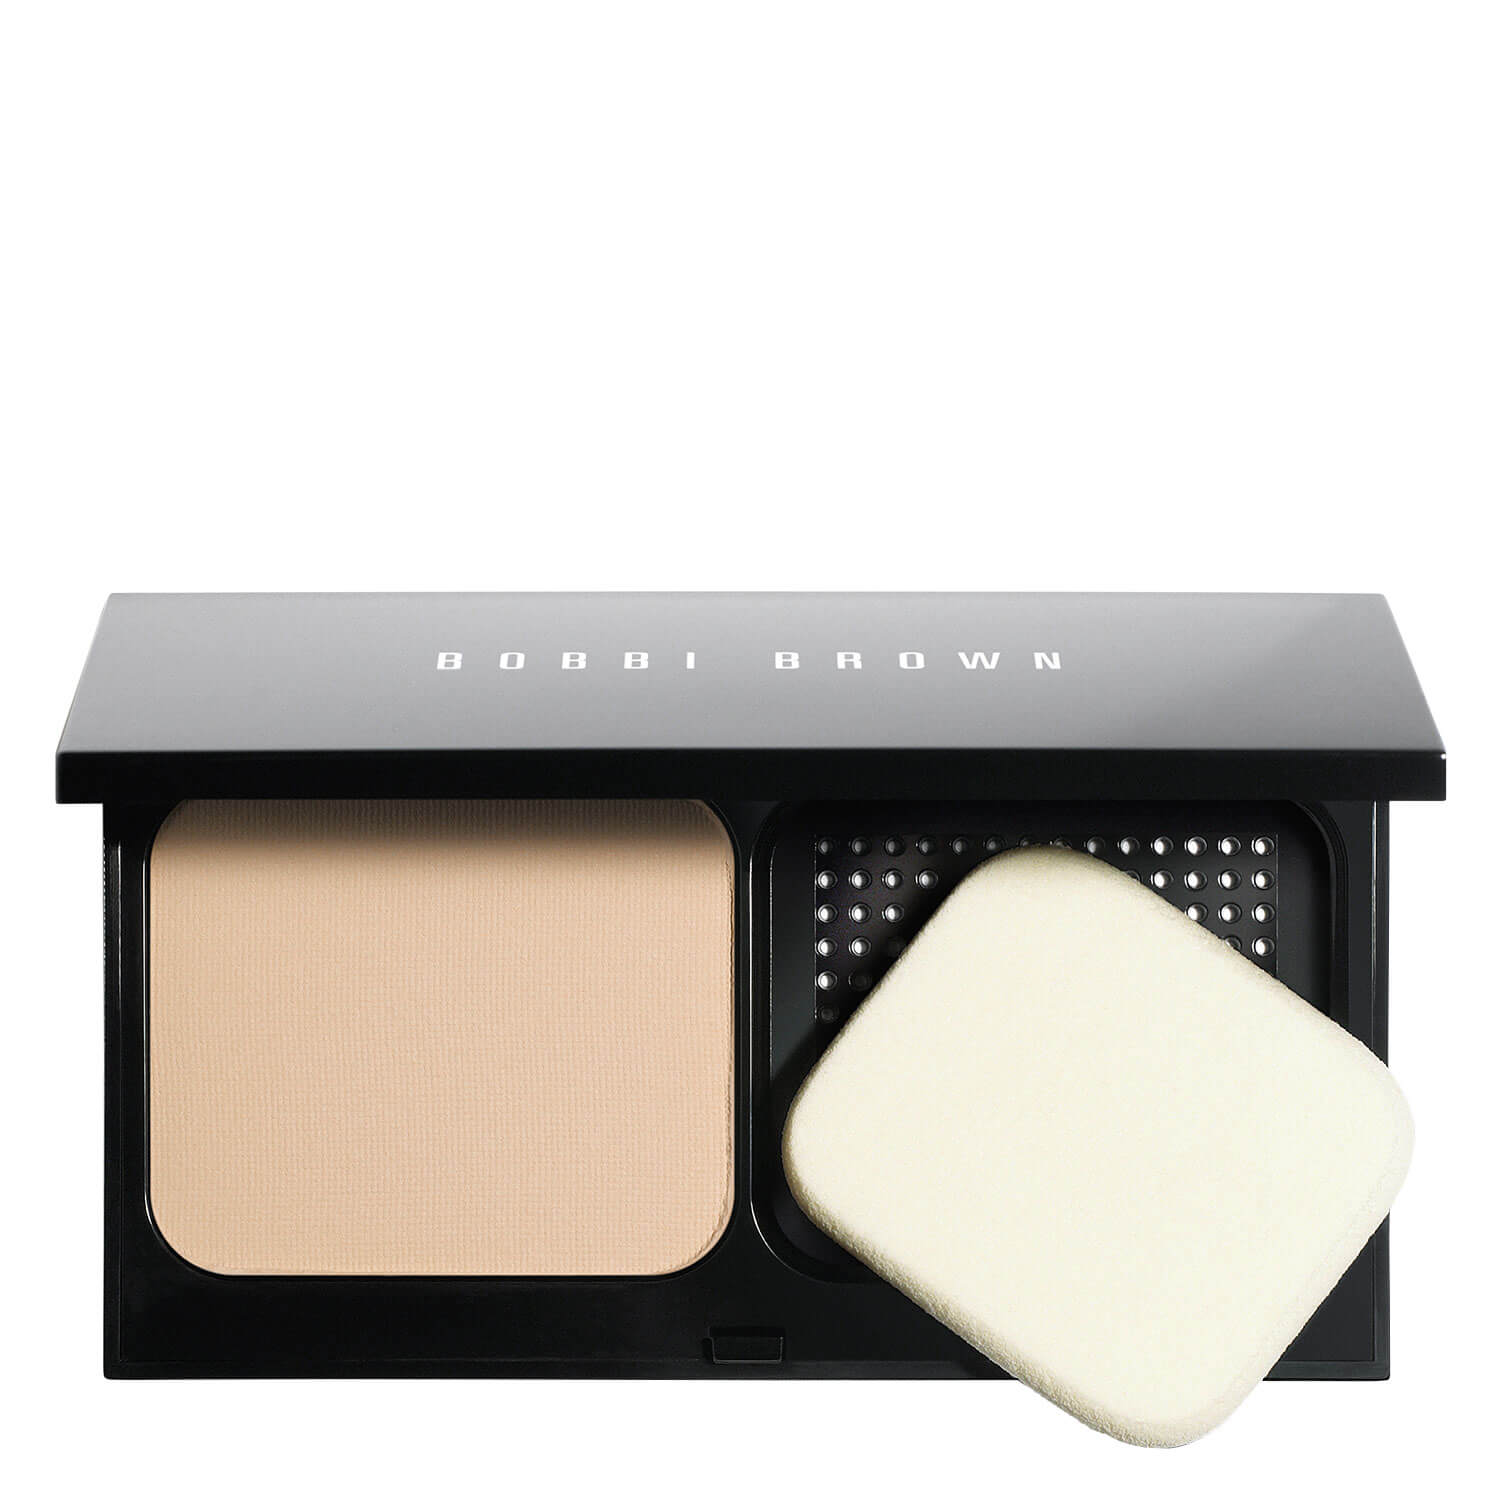 BB Foundation - Weightless Powder Foundation Porcelain 0